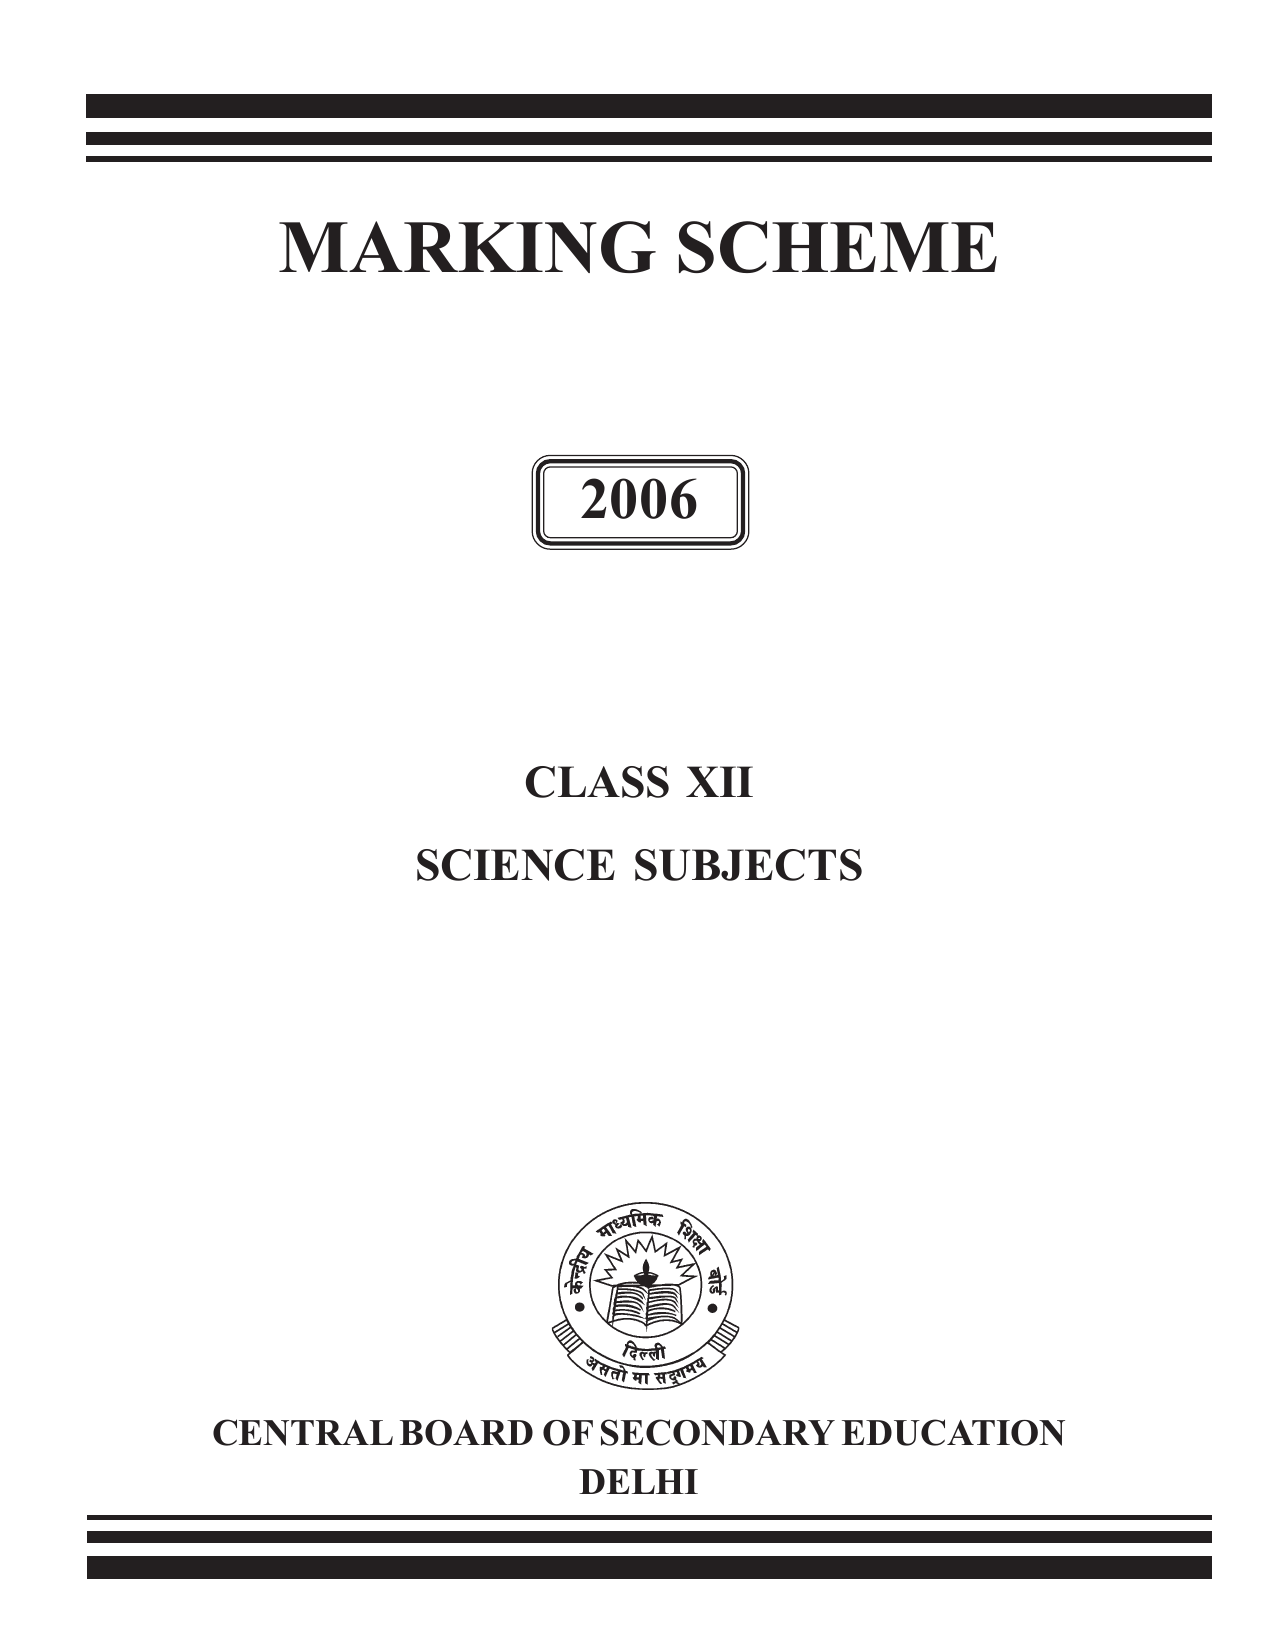 MARKING SCHEME 2006 CLASS XII SCIENCE SUBJECTS CENTRAL BOARD OF SECONDARY  EDUCATION DELHI MARKING SCHEME 2006 CLASS XII SCIENCE SUBJECTS CENTRAL  BOARD OF ...